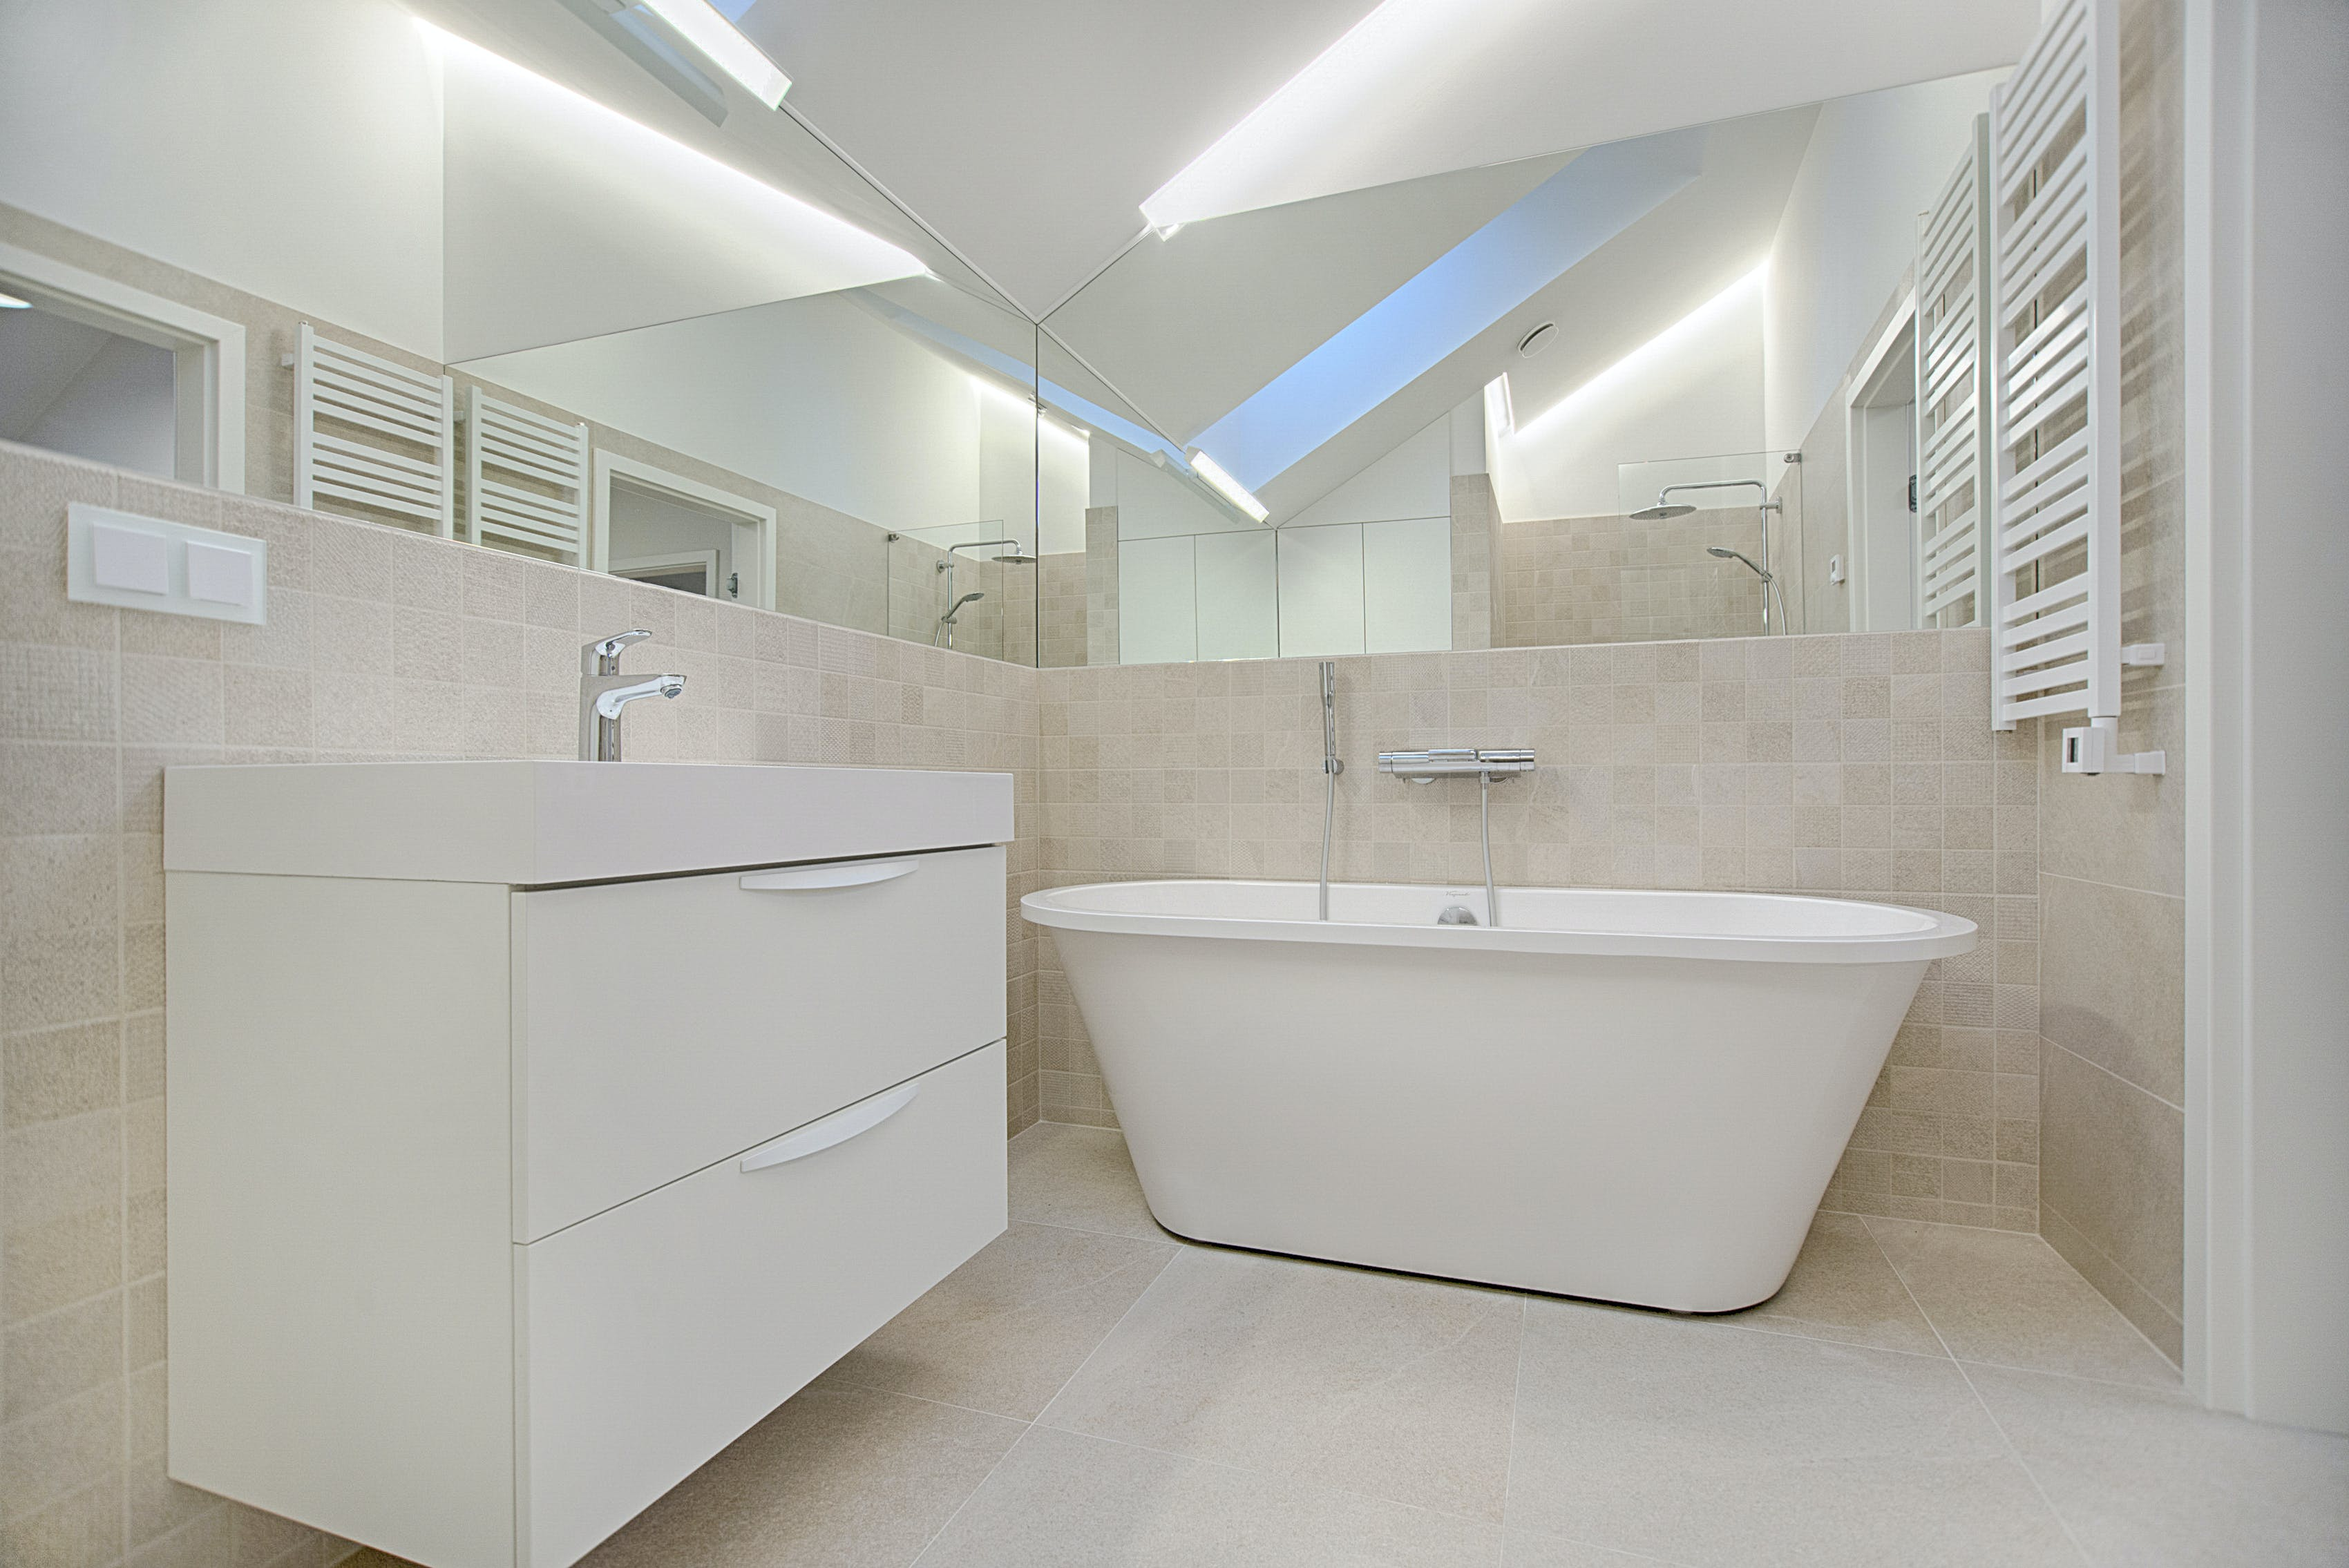 White Bathtub in Bathroom